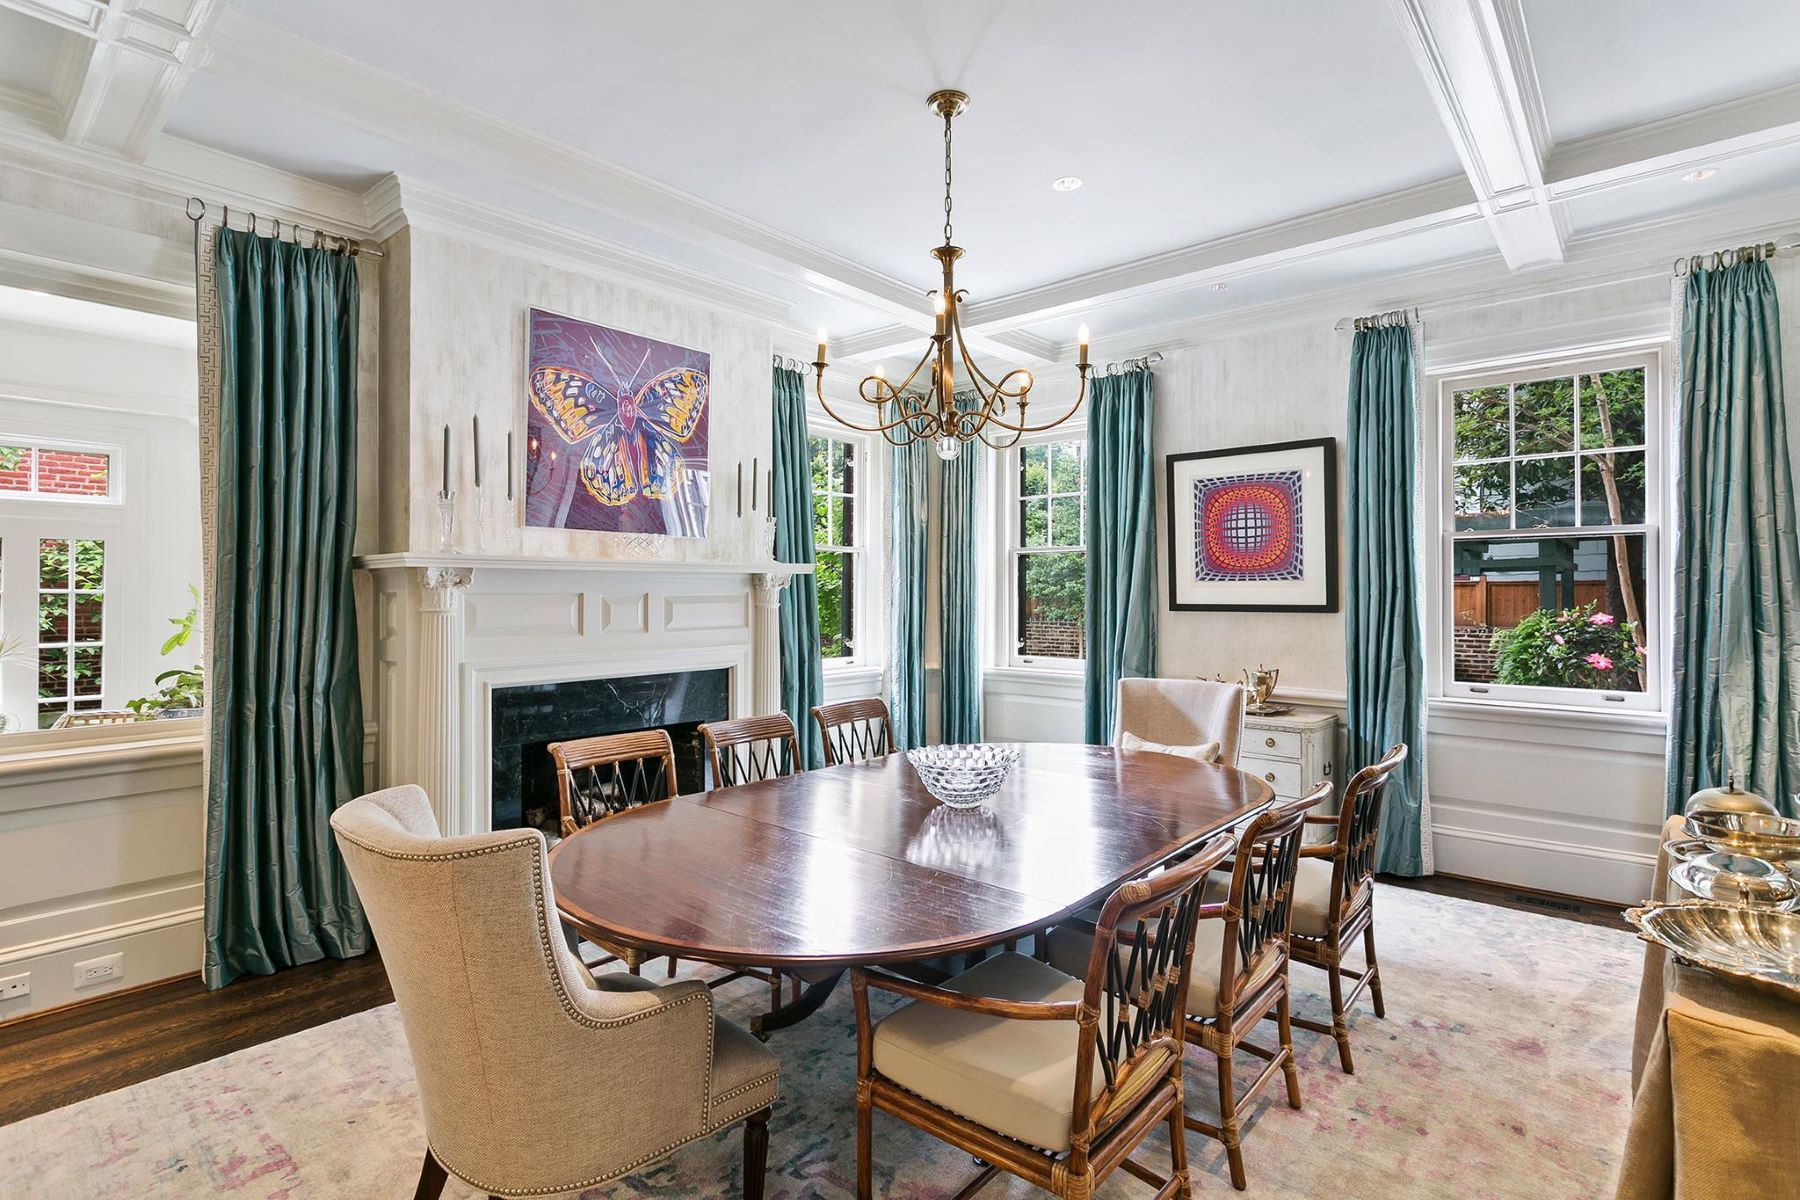 Additional photo for property listing at 3301 N St Nw 3301 N St Nw Washington, District Of Columbia 20007 United States